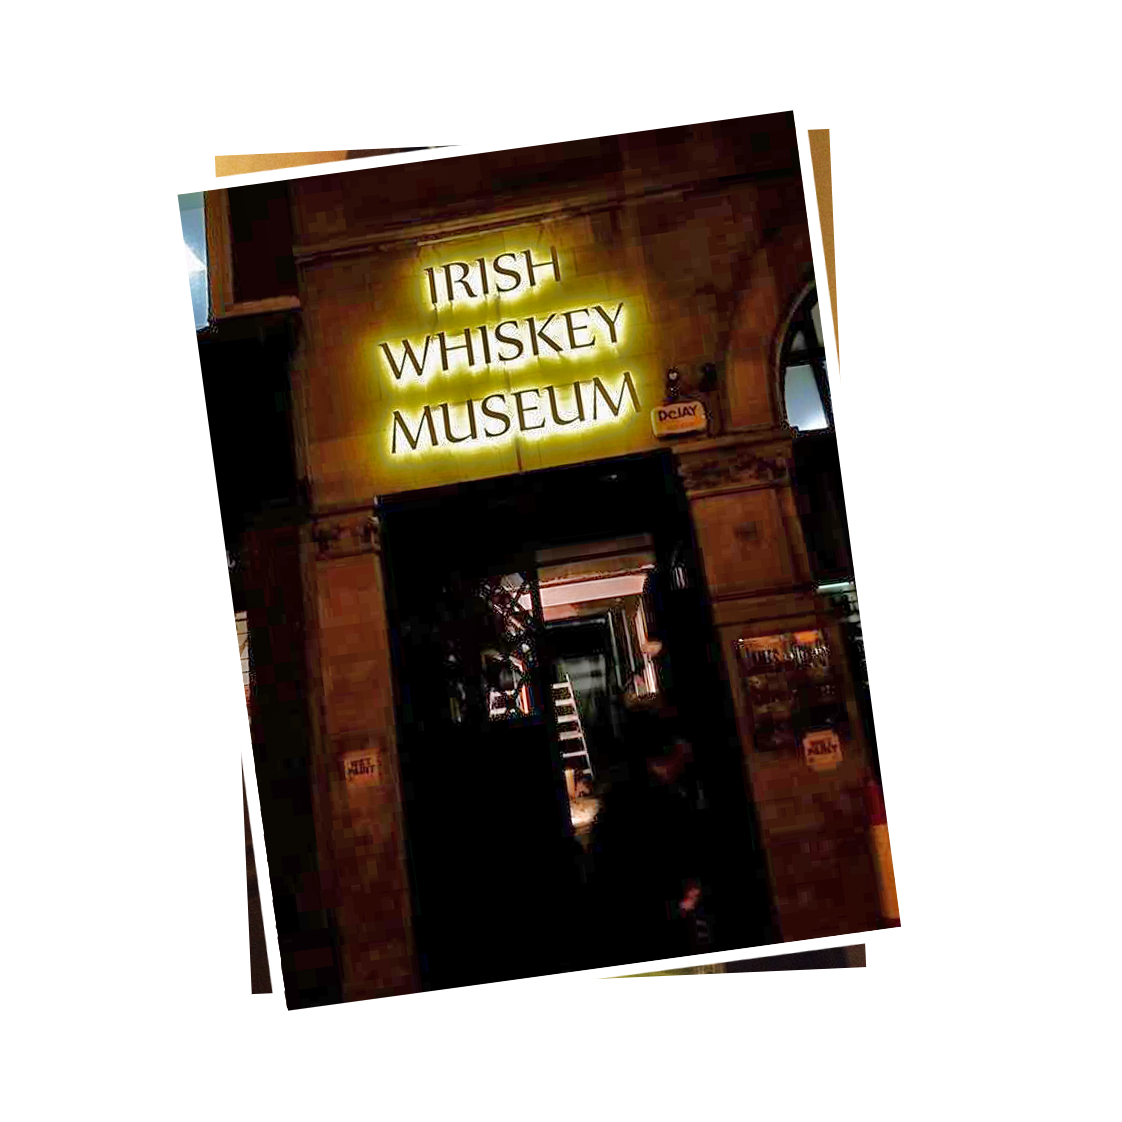 The Irish Whiskey Museum bar